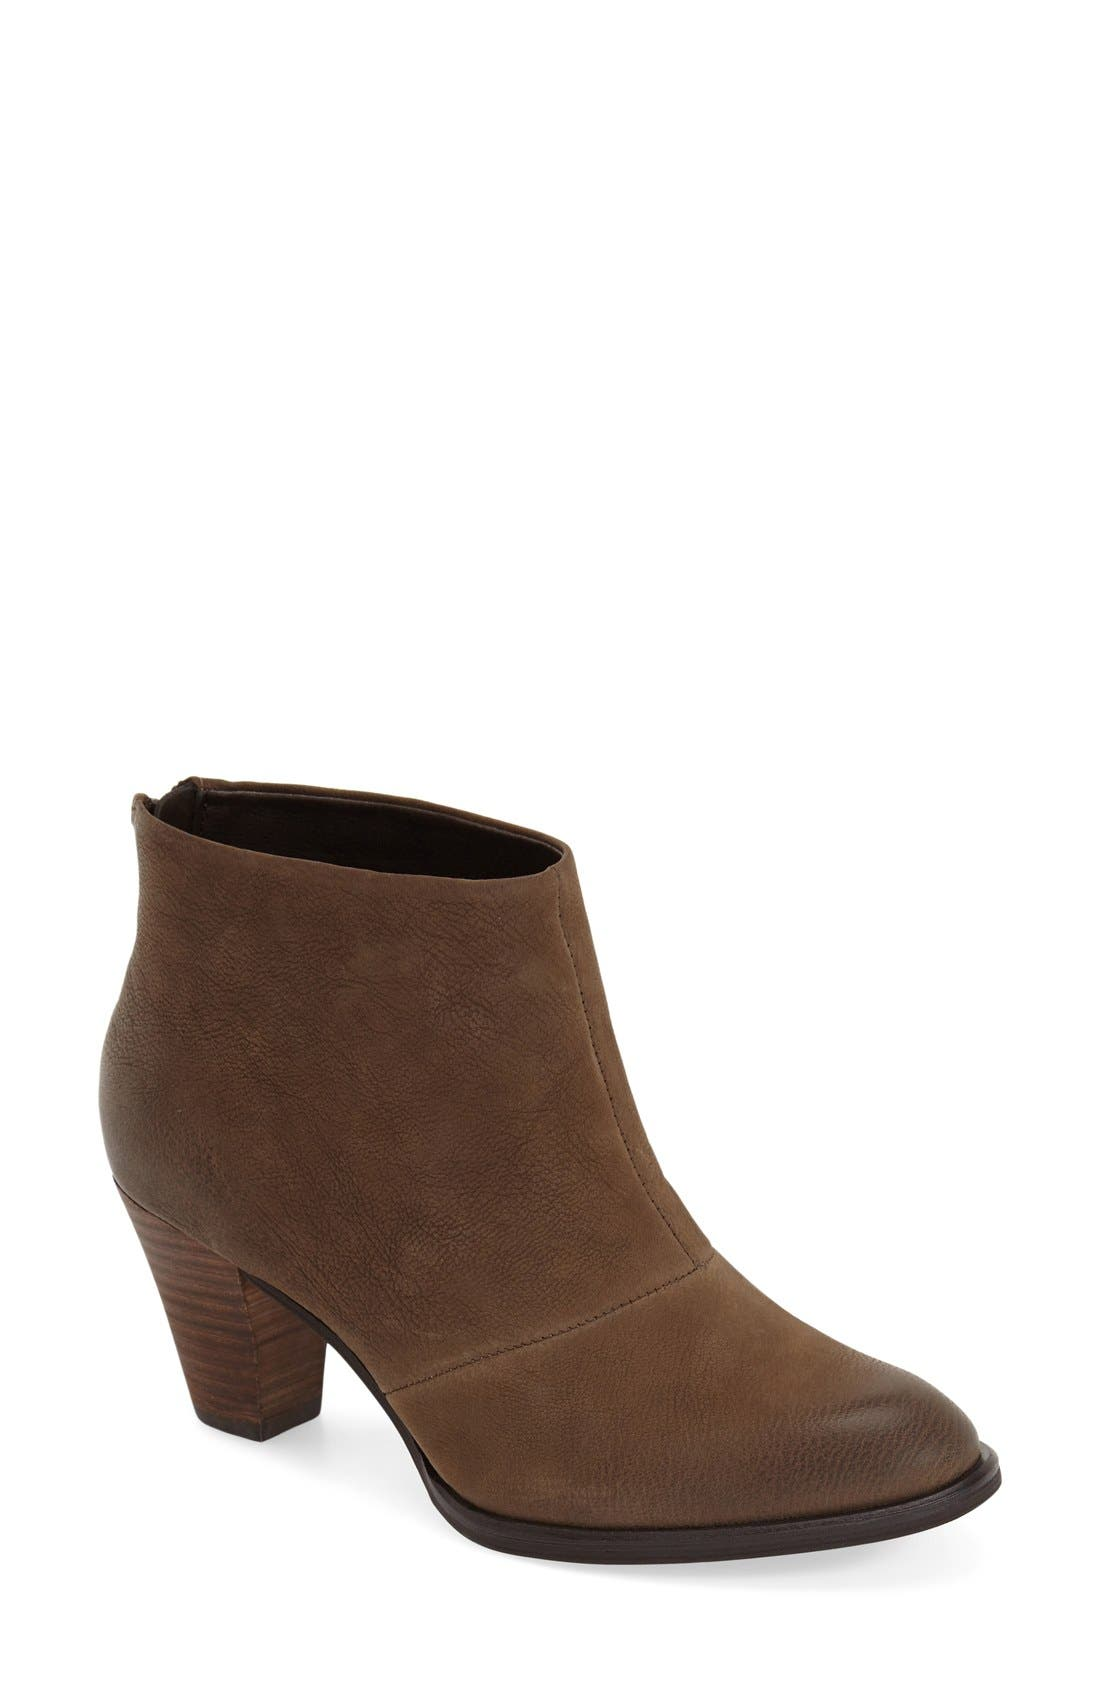 'Devyn' Ankle Bootie,                             Main thumbnail 1, color,                             Khaki Leather